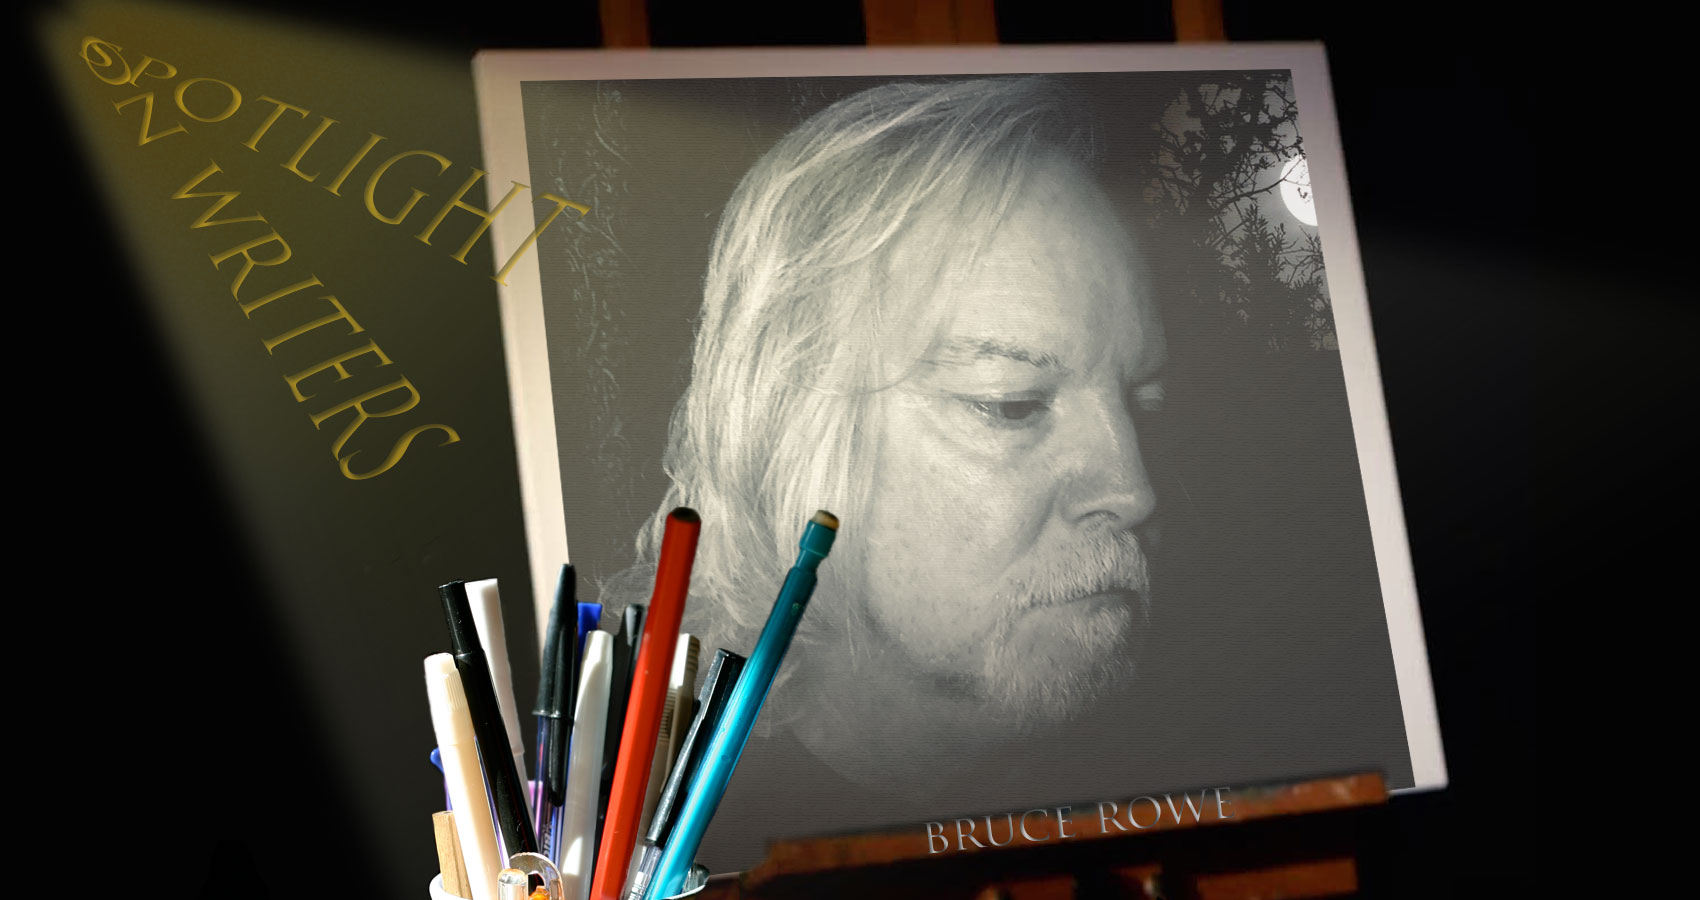 Spotlight On Writers - Bruce Rowe interview at Spillwords.com